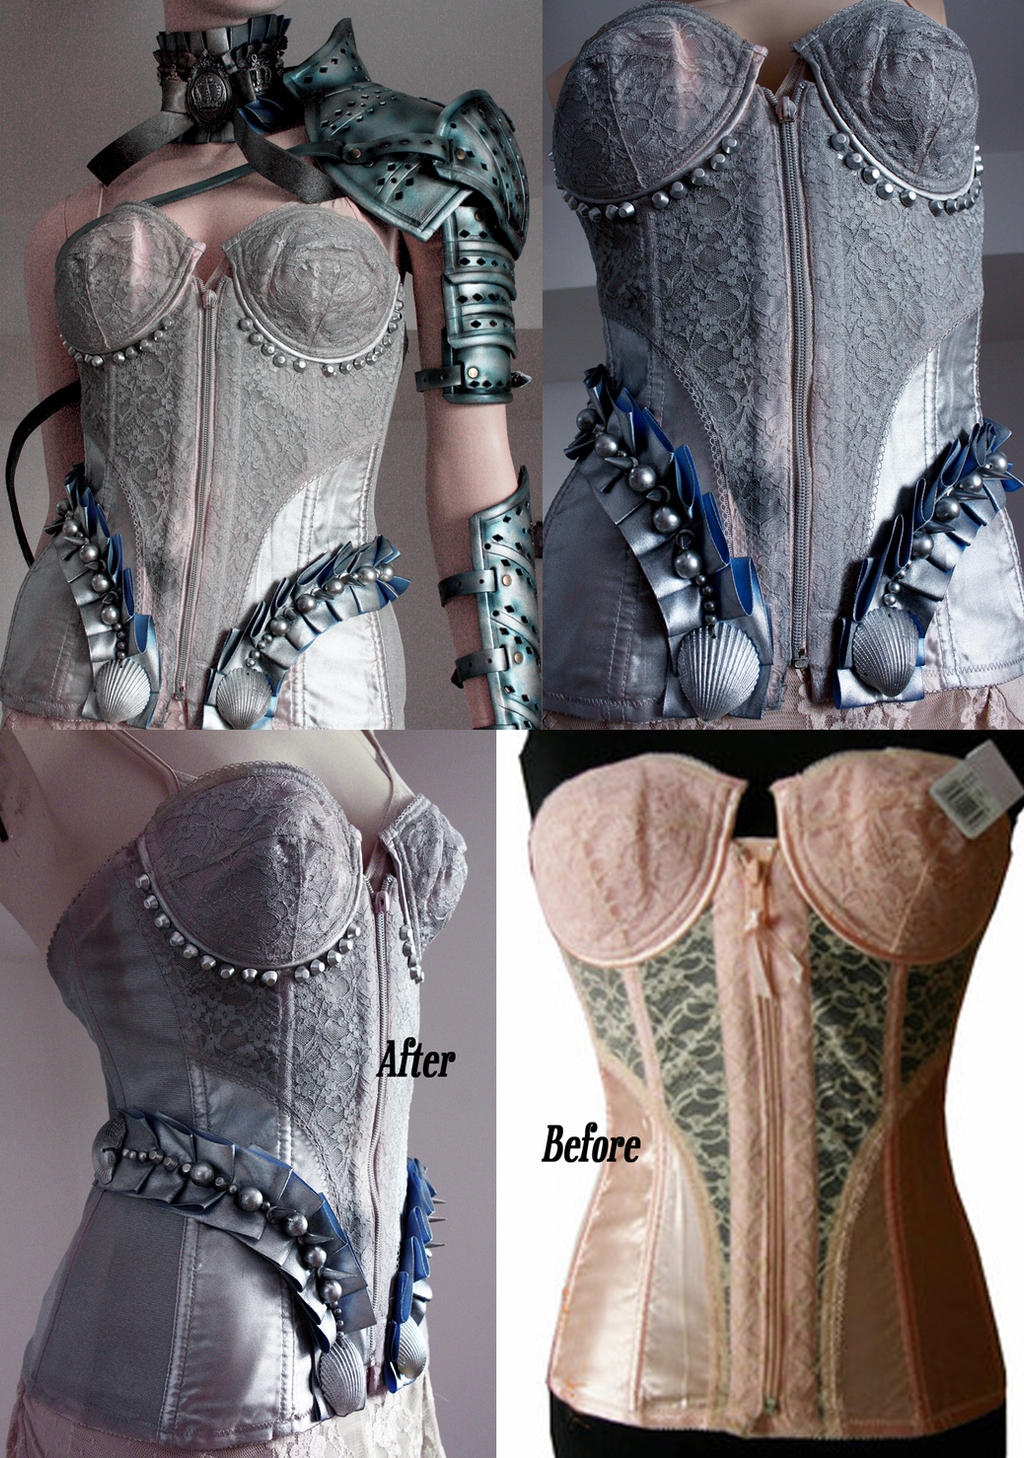 Before and After corset re-styling